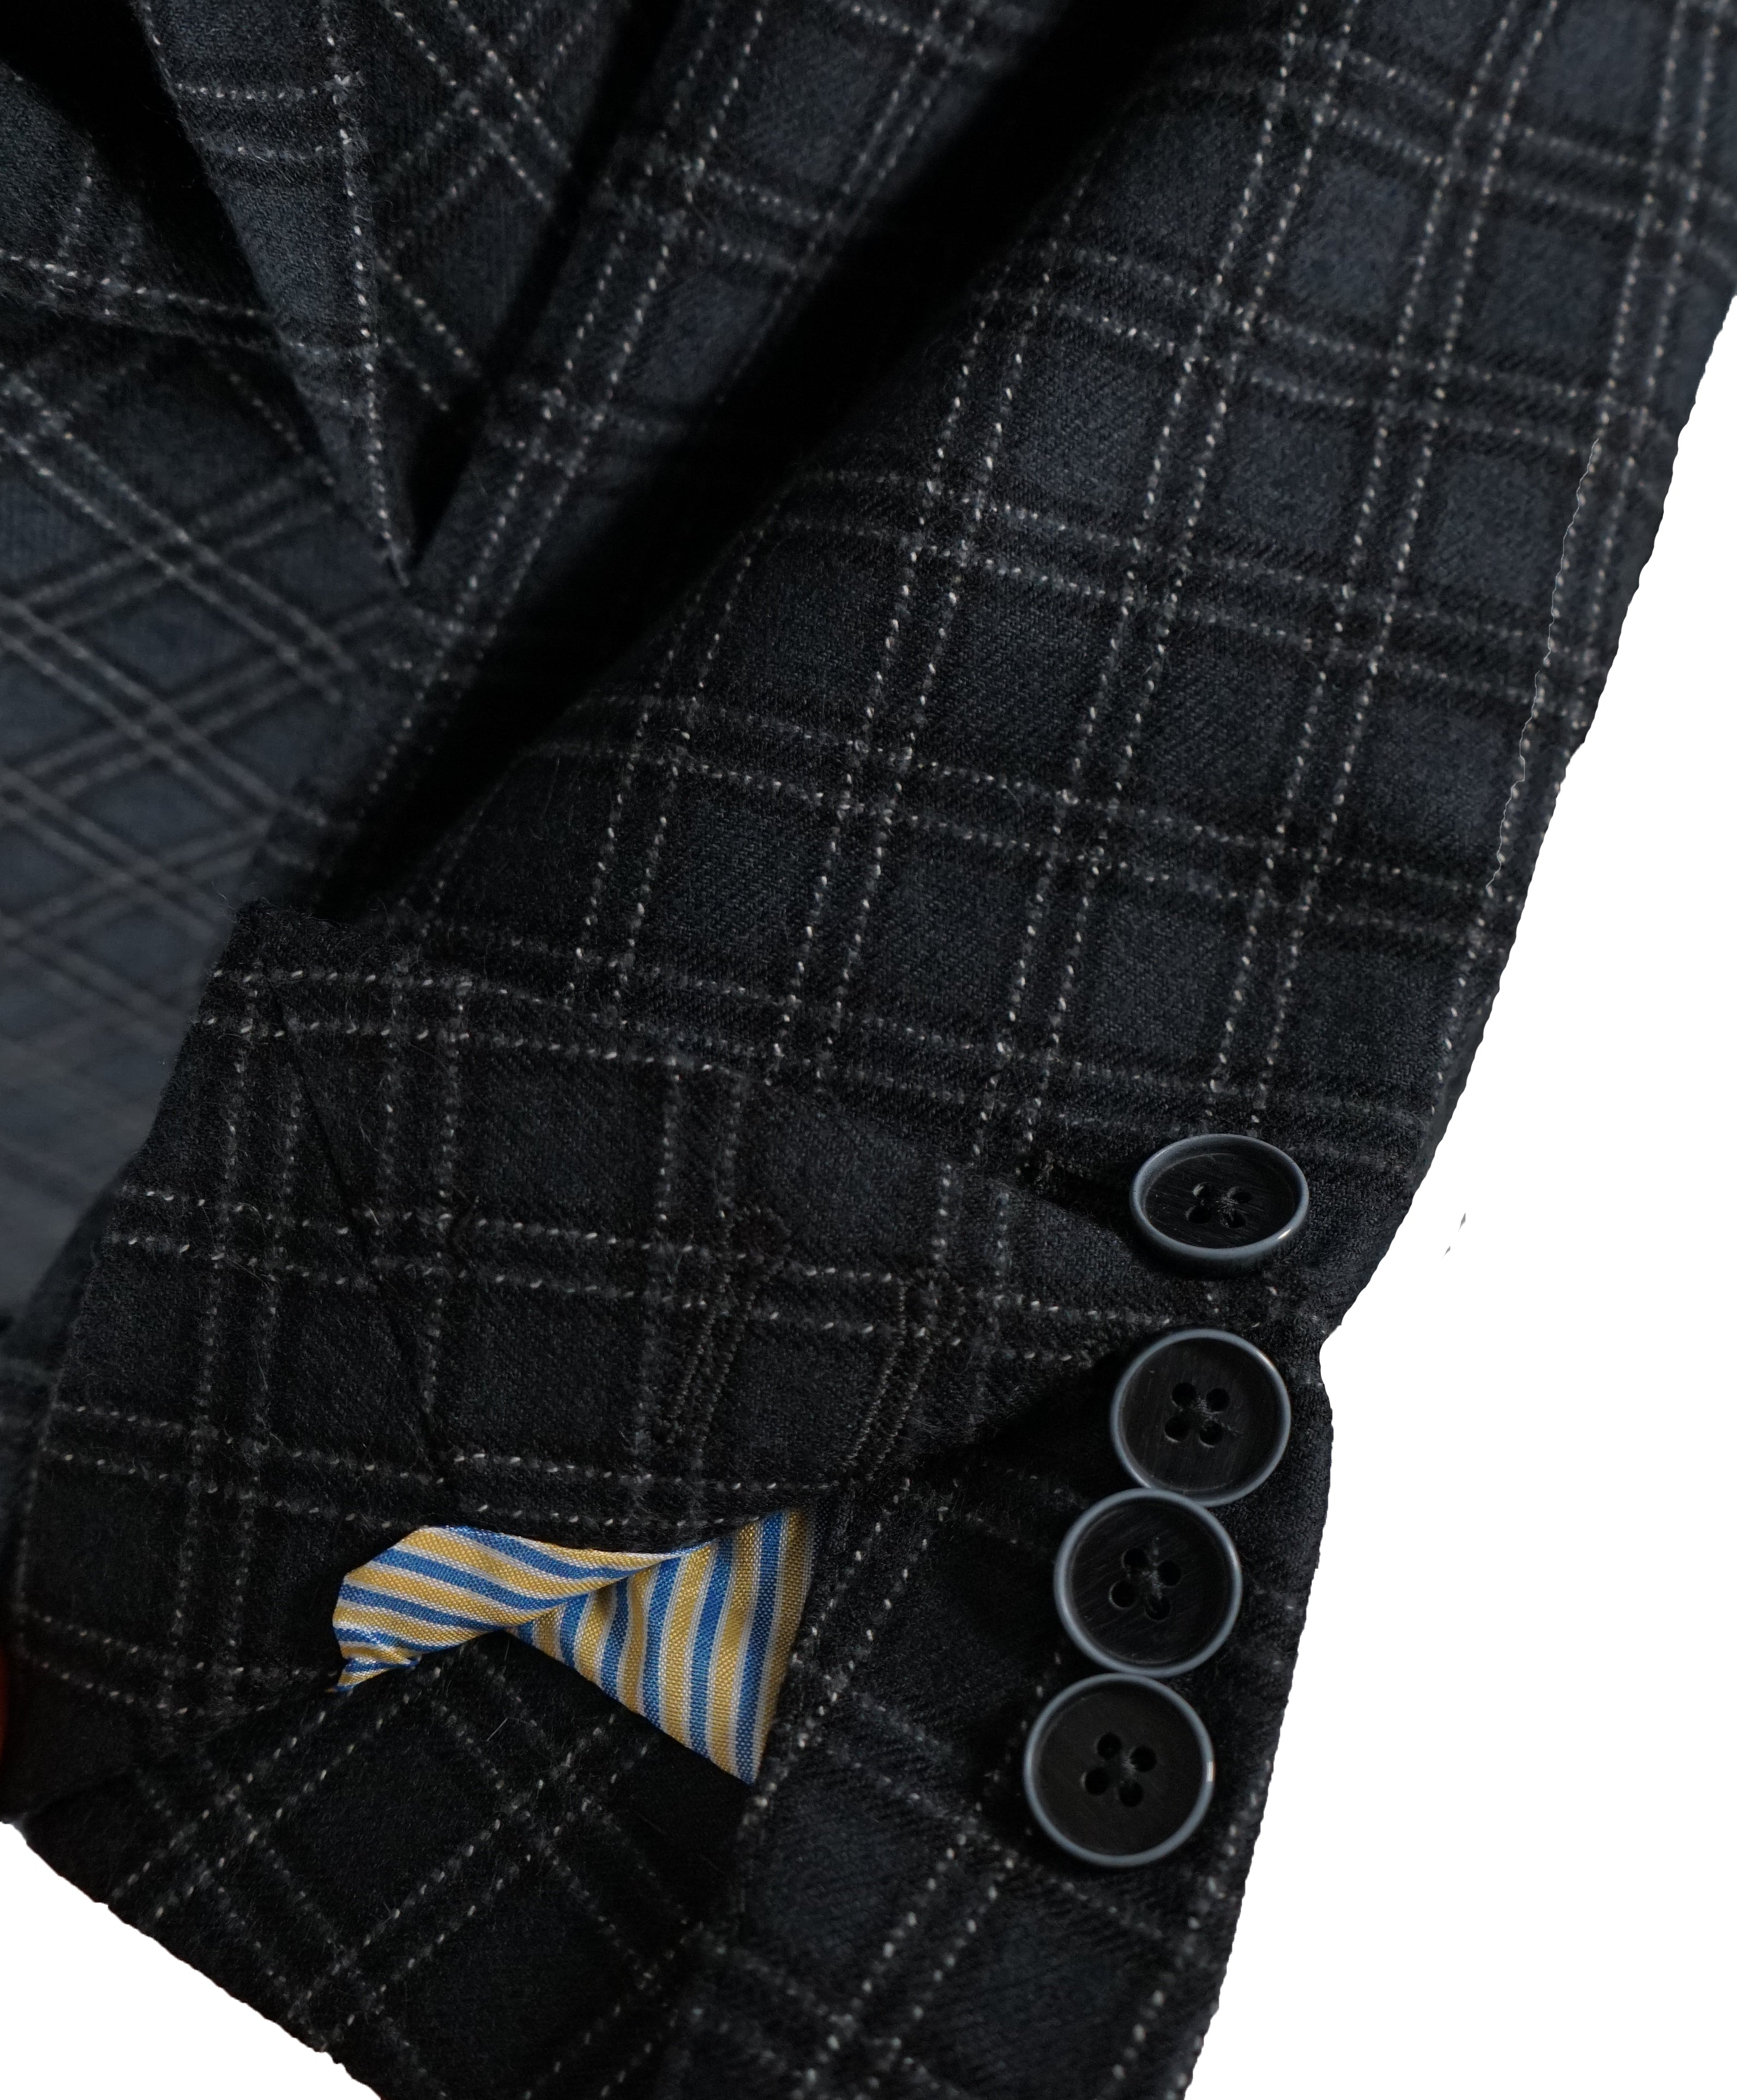 SARTORIE ZANARDELLI - Unlined Gray Bold Plaid Patch Pocket Suit Made In Italy-42S